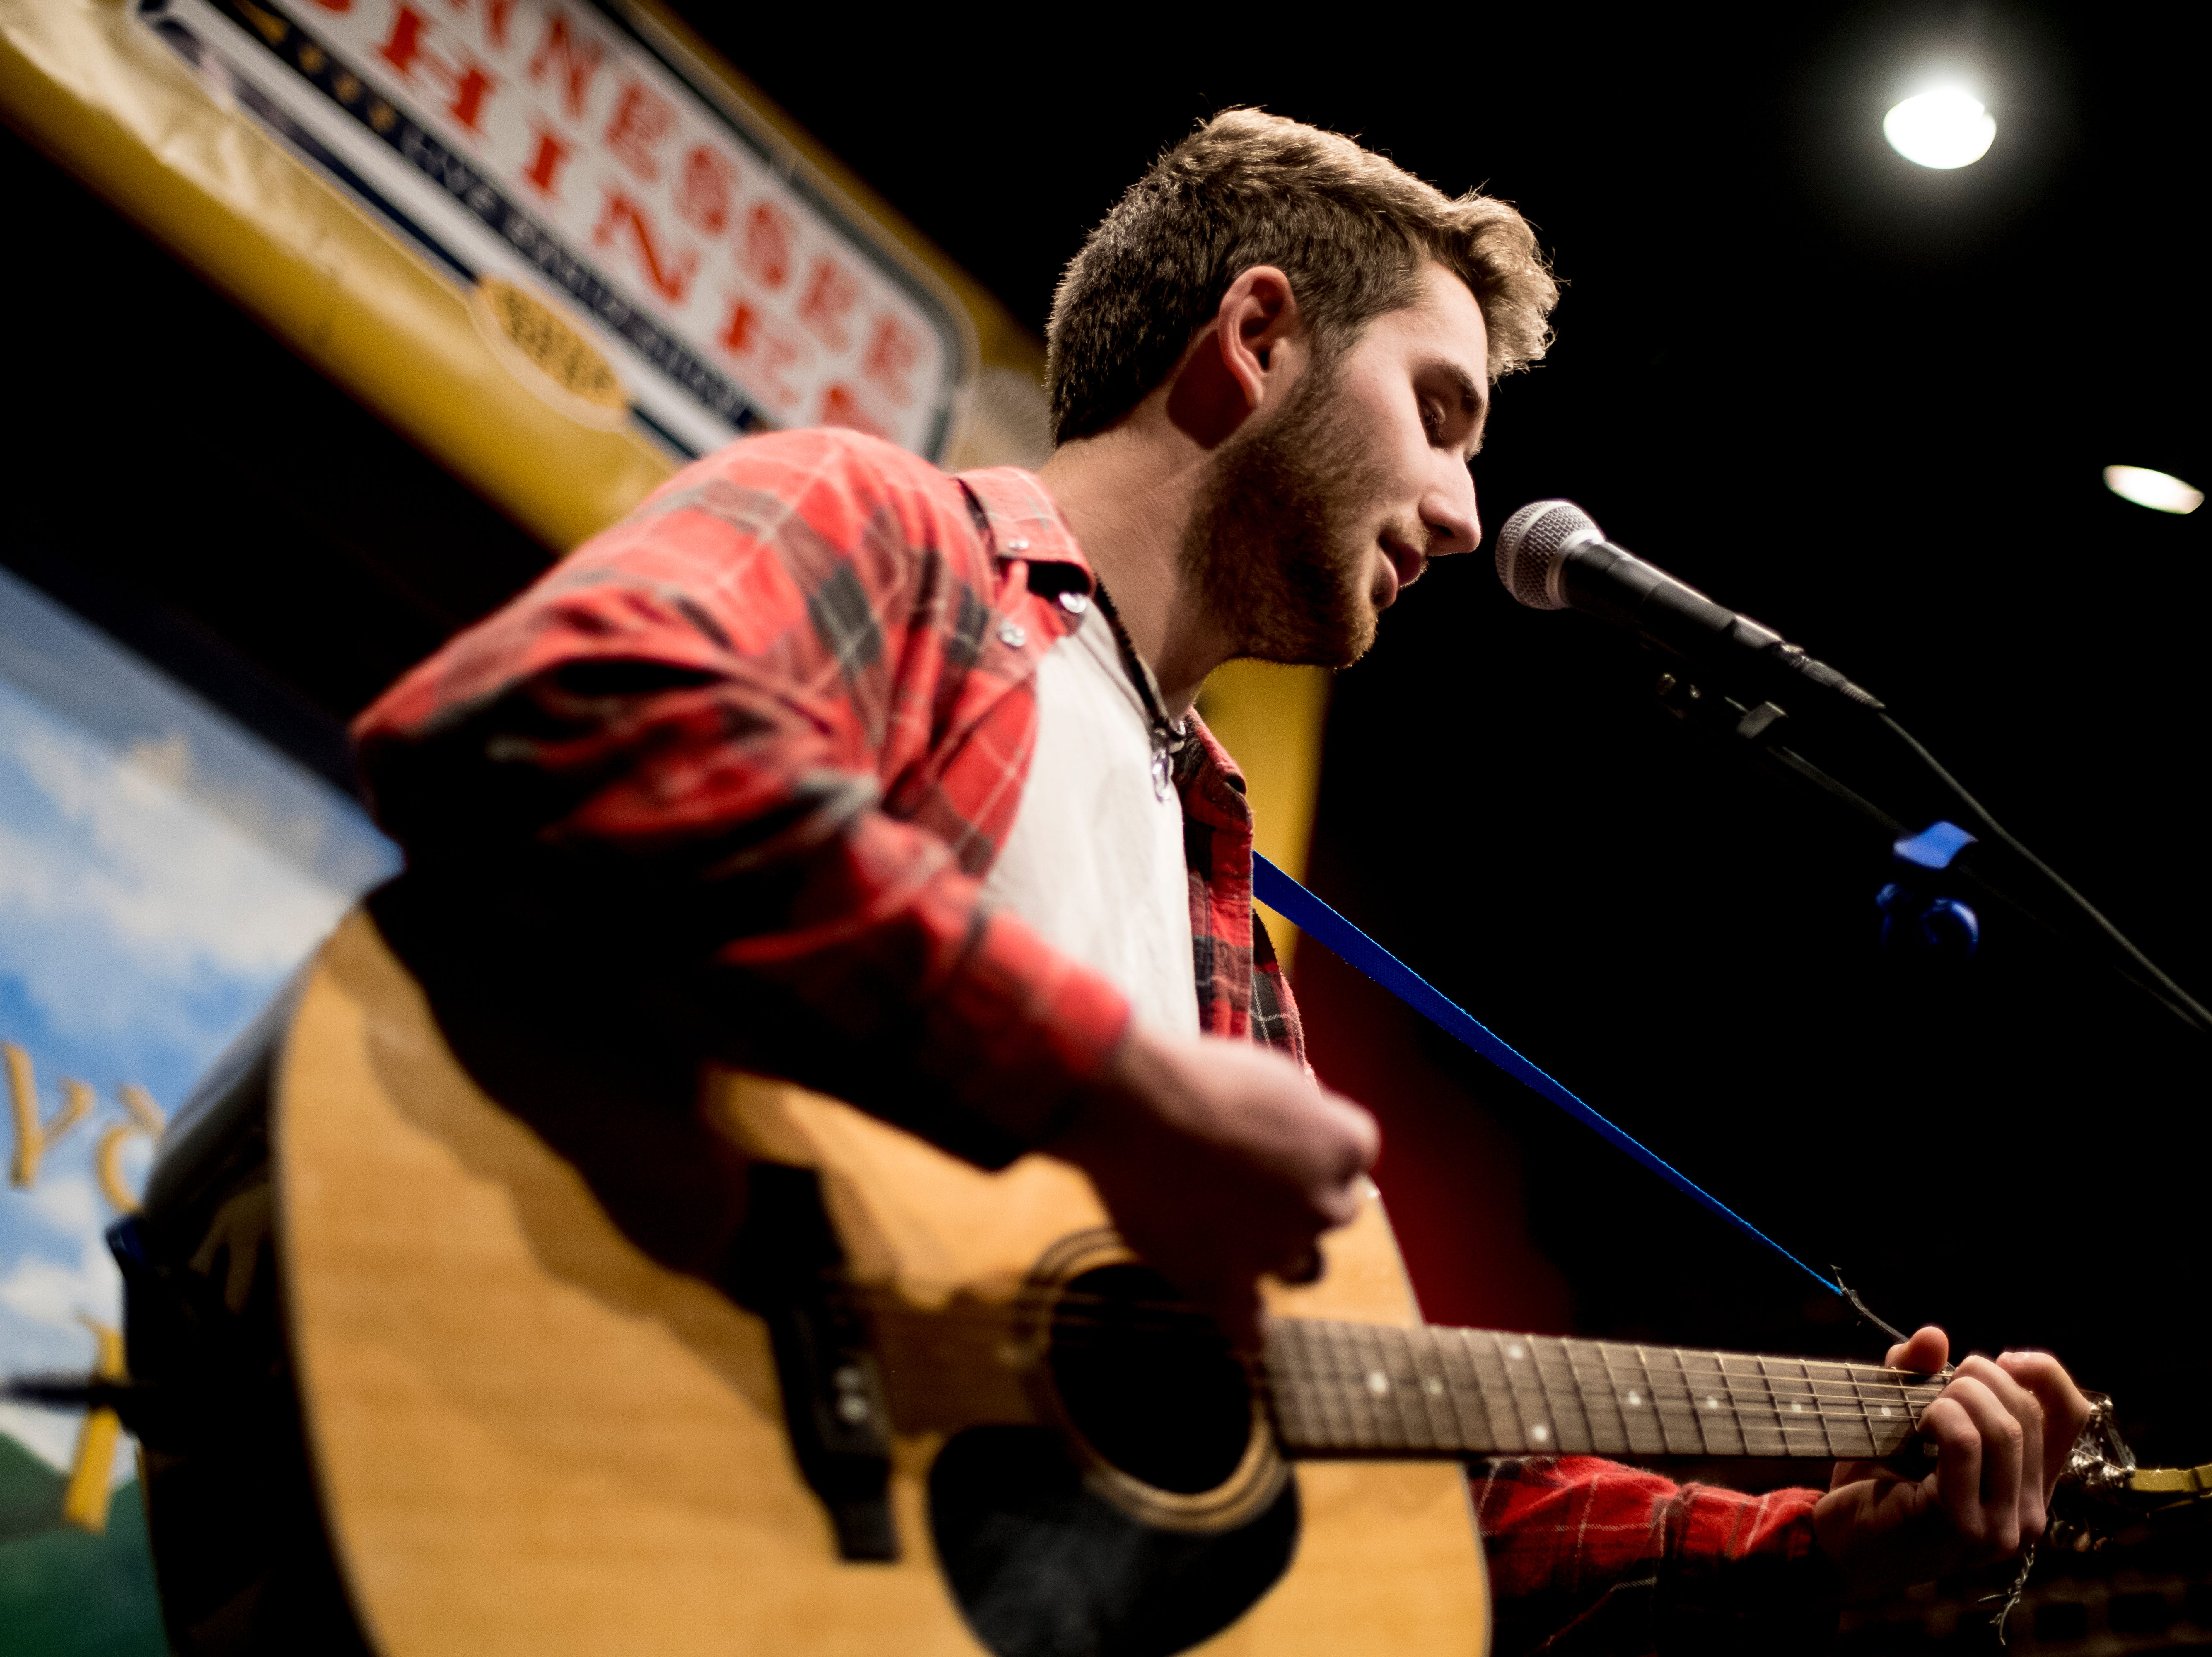 Jacob Clark performs at Boyd's Jig & Reel during Big Ears Festival 2019 in Knoxville, Tennessee on Thursday, March 21, 2019.